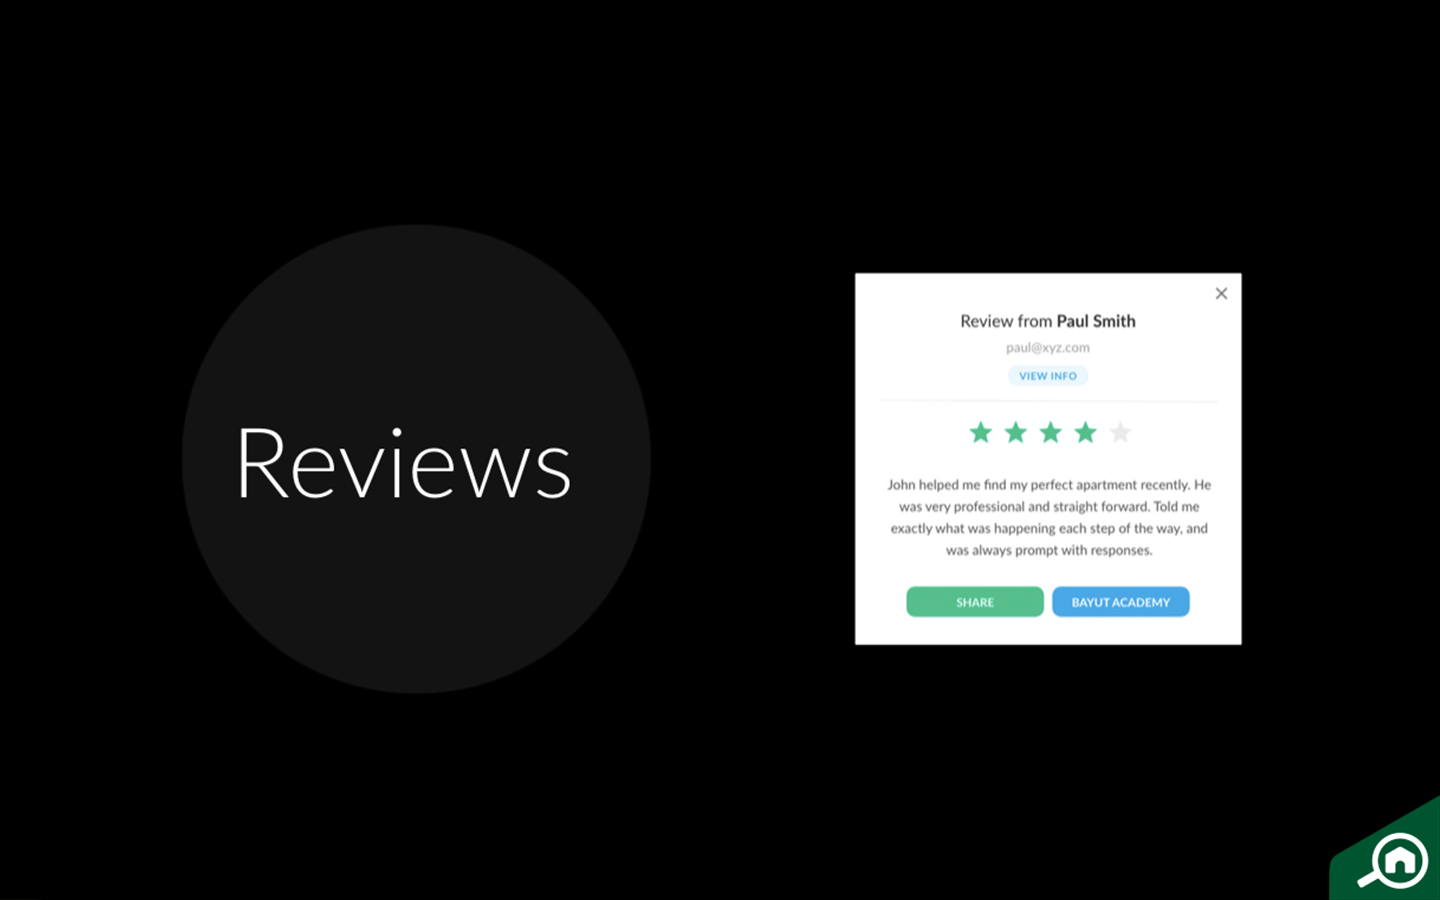 Reviews of agents on Bayut